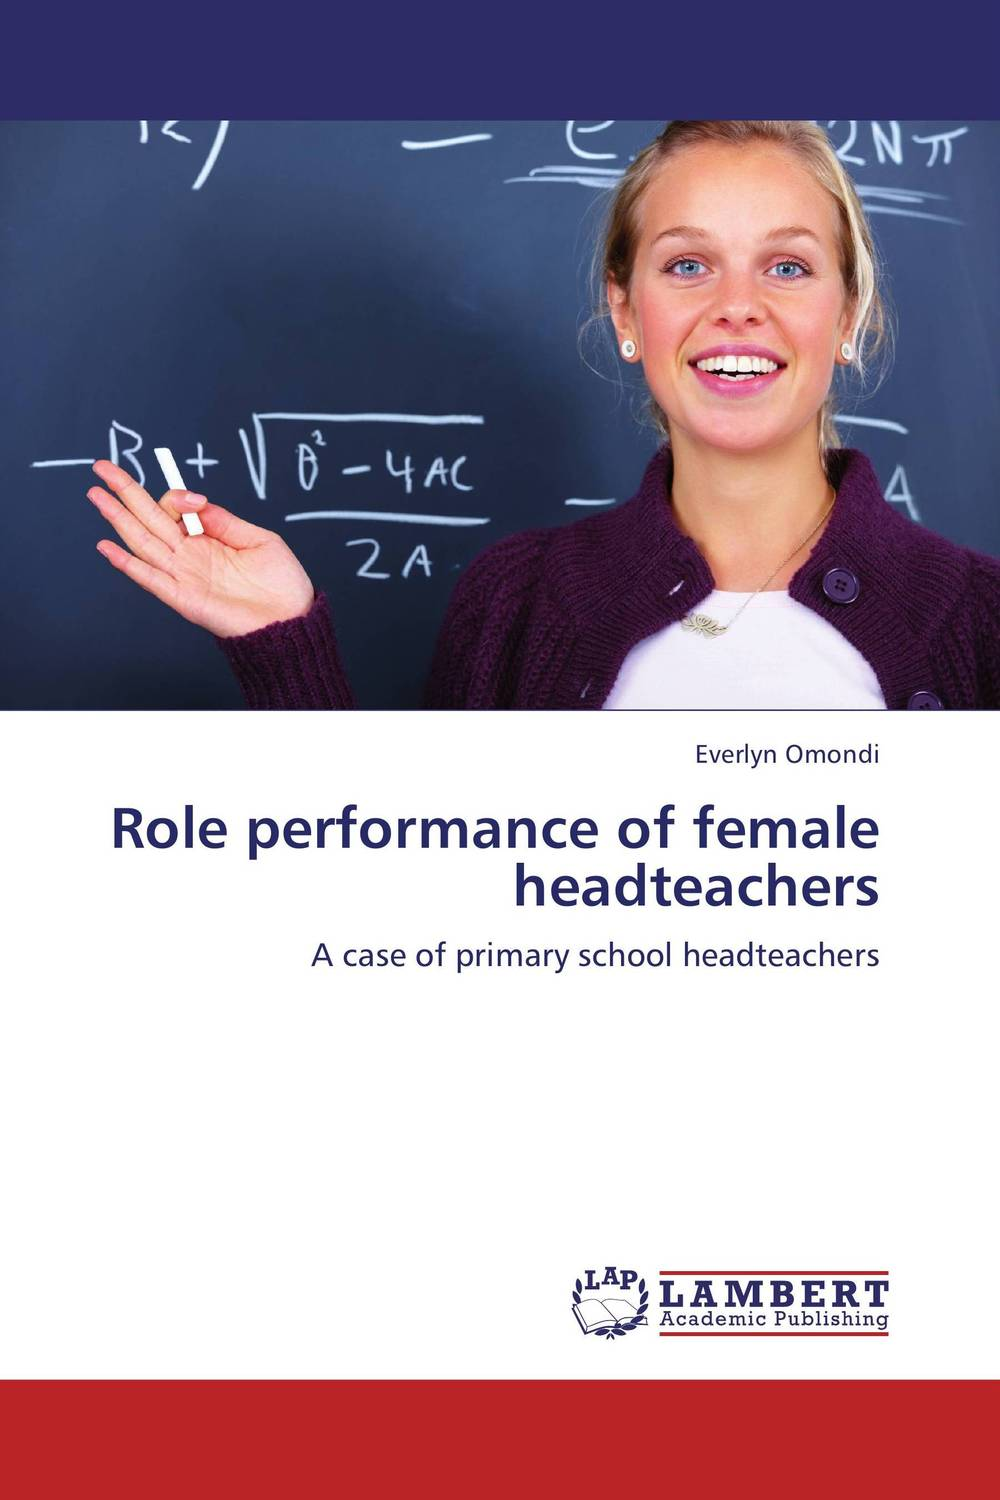 Role performance of female headteachers use of role plays in teaching english in primary schools